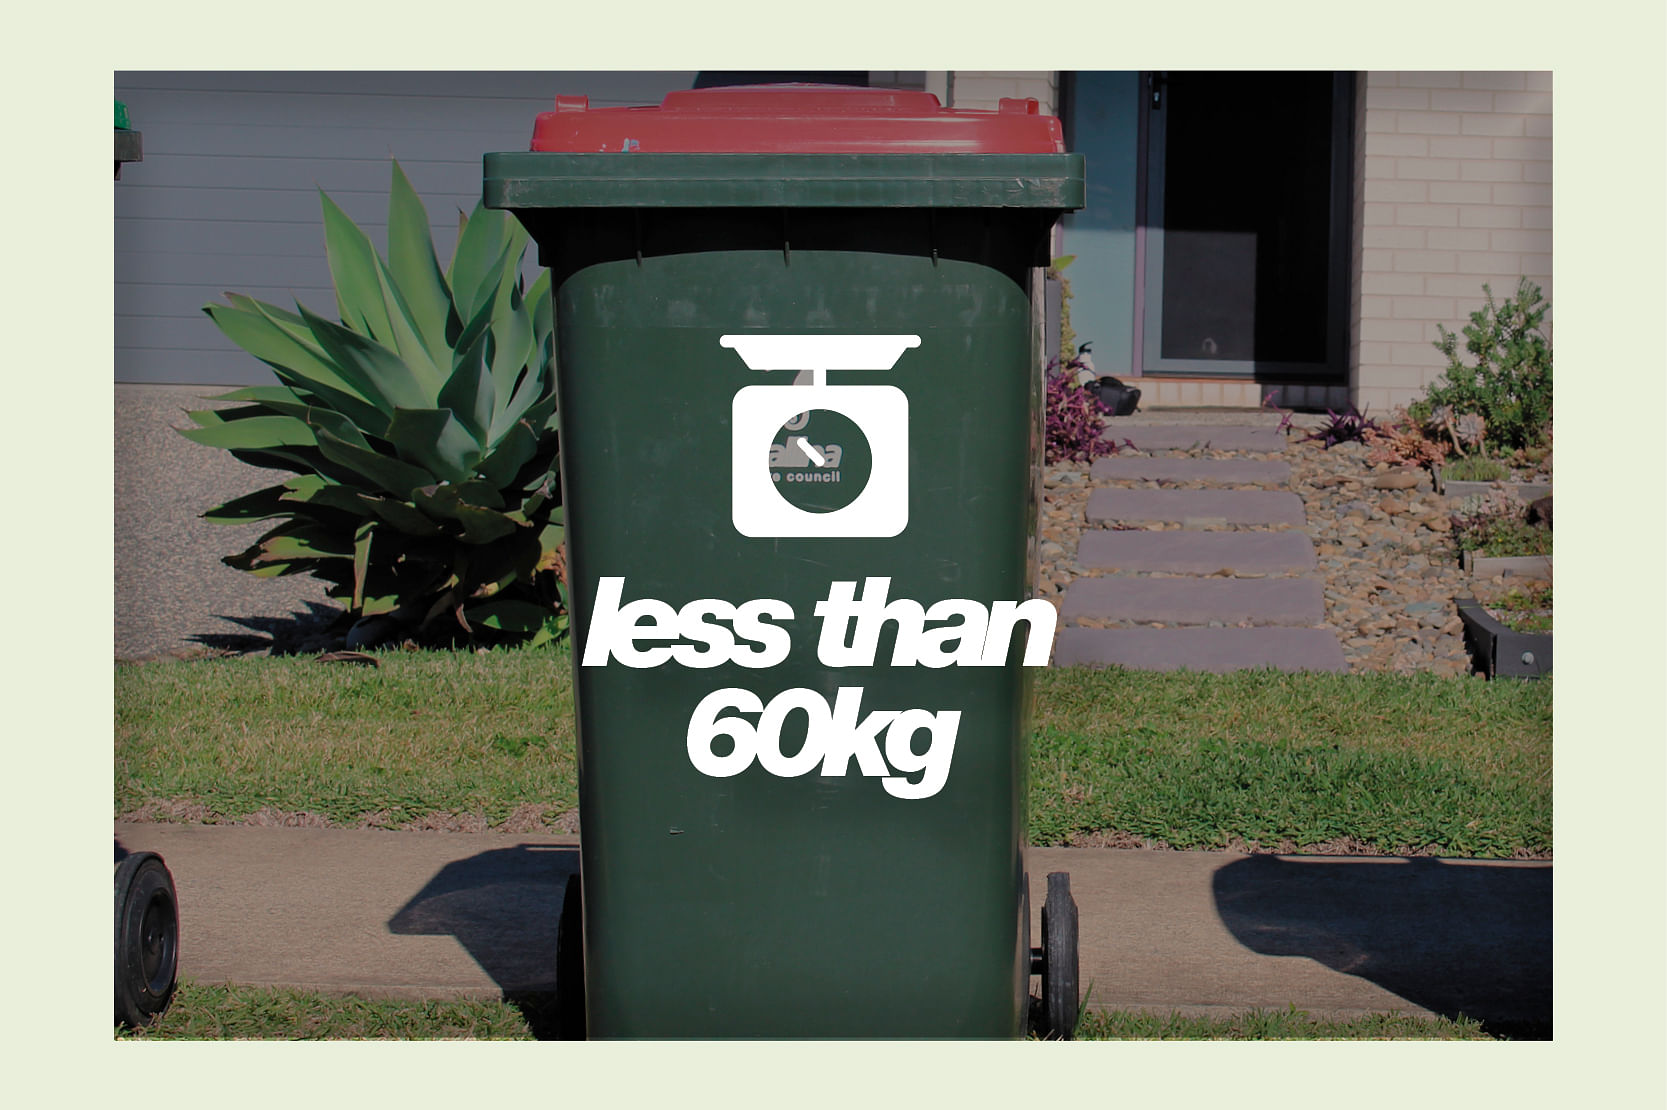 Bins need to be under 60kg in weight